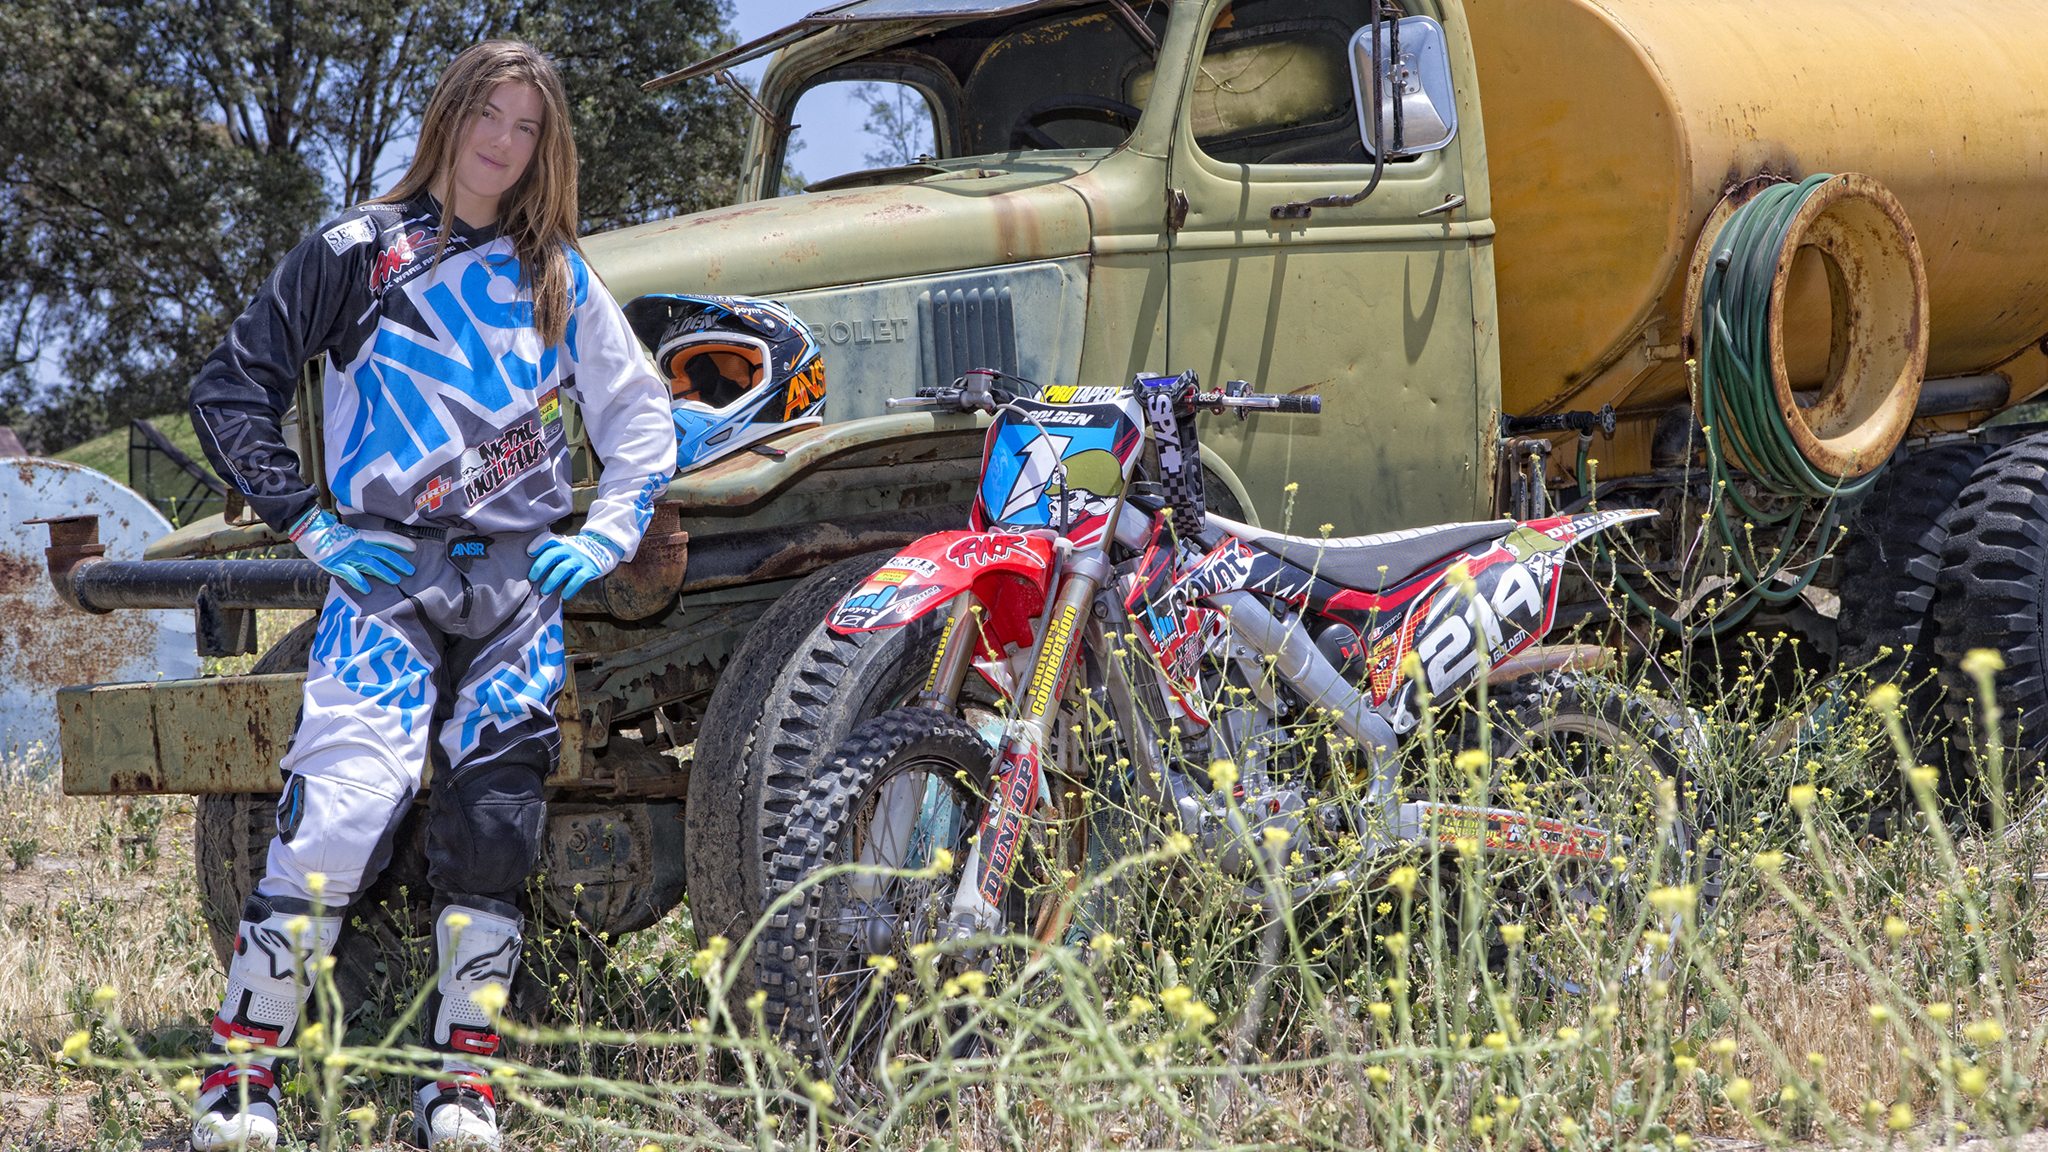 Vicki Golden joined the Metal Mulisha team this week, becoming the first female team rider in the brand's history.